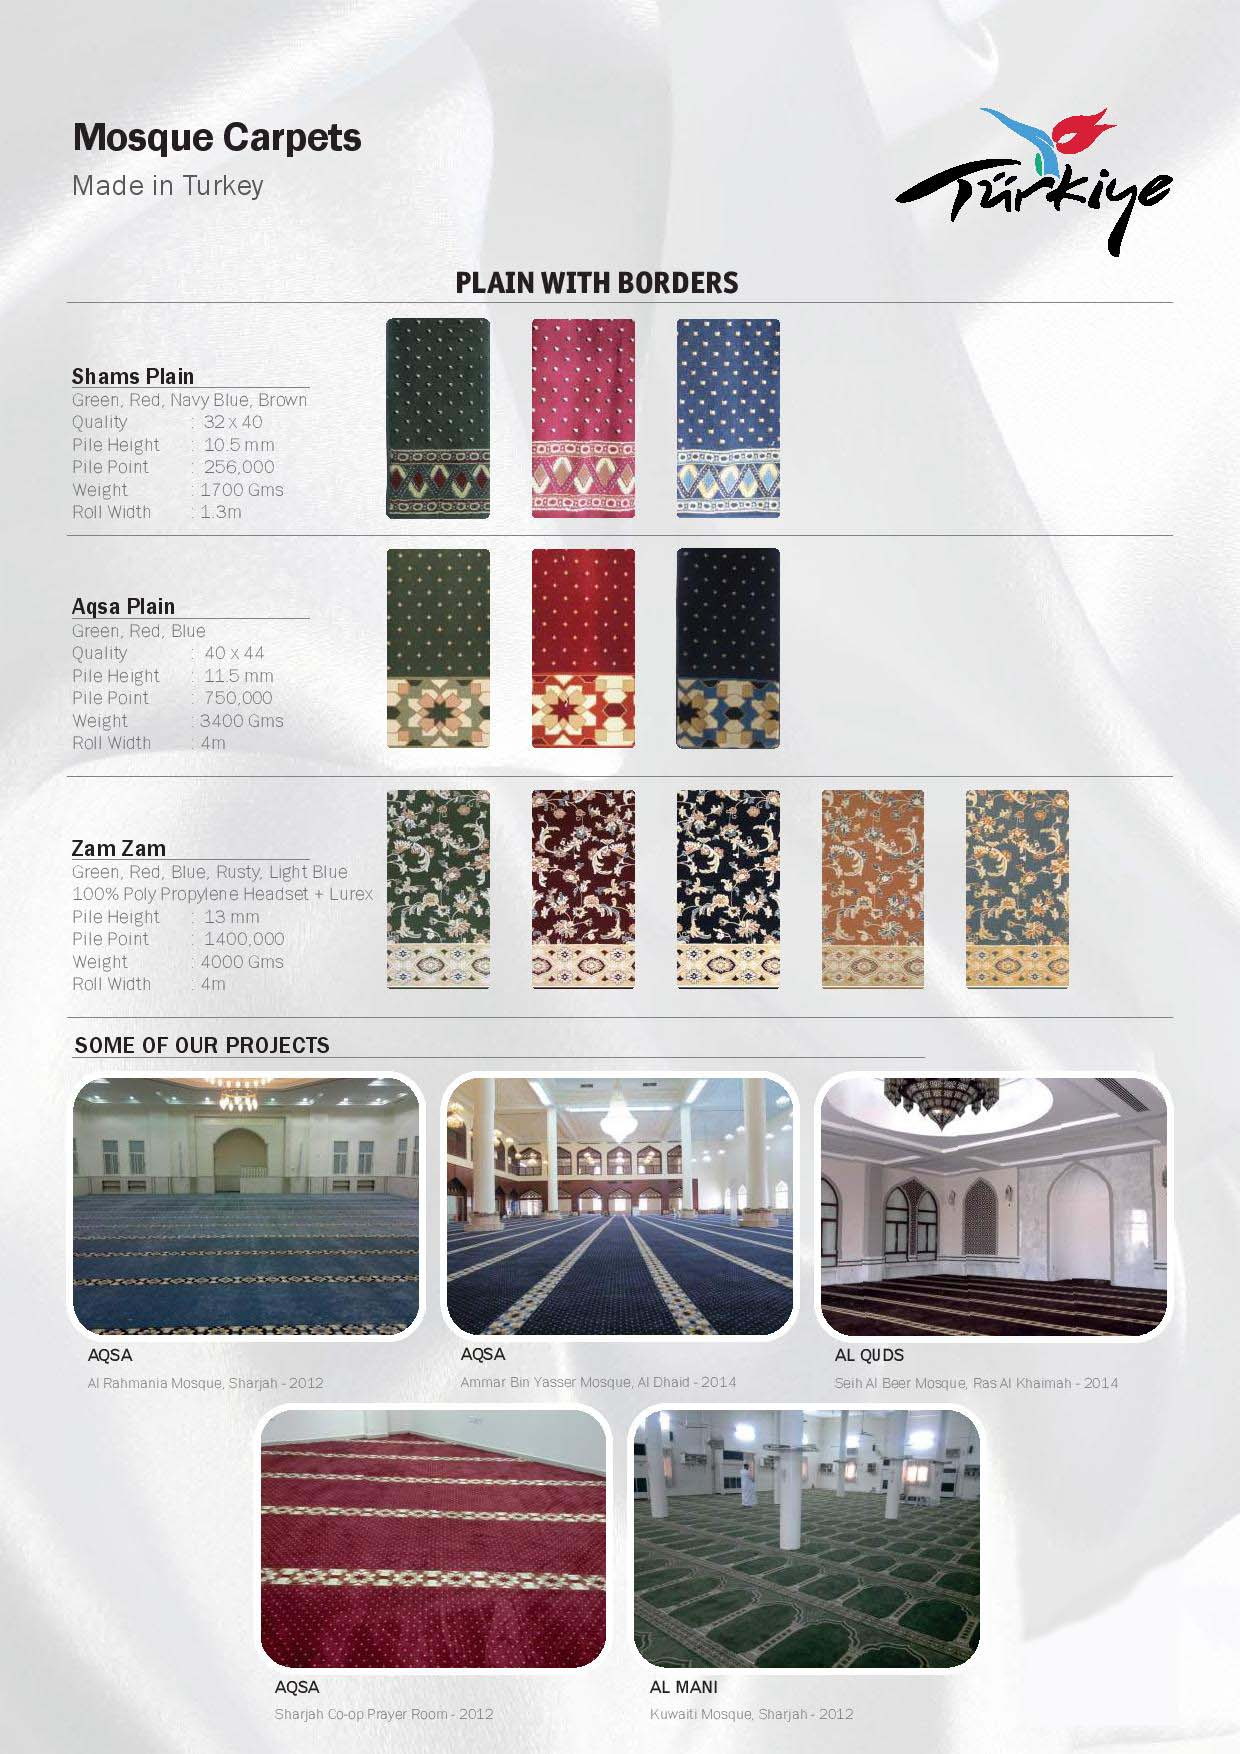 92468262Mosque Carpets-page-004 copy